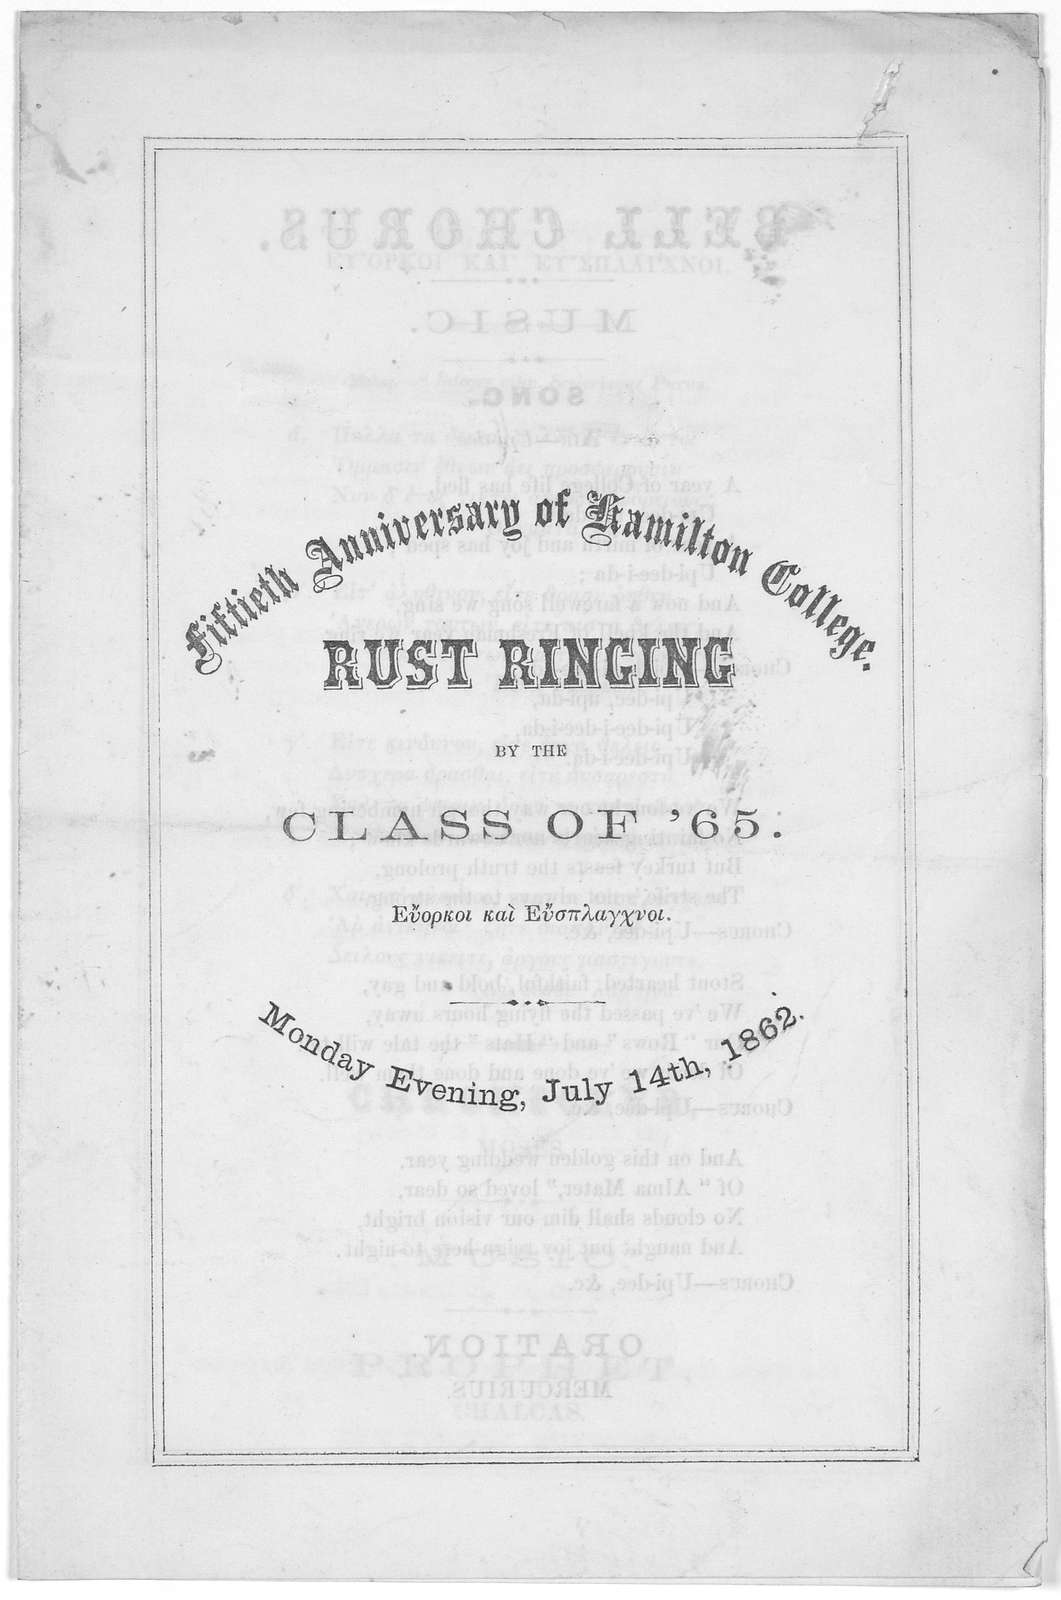 Fiftieth anniversary of Hamilton College. Rust ringing by the class of '65 ... Monday evening, July 145h, 1862.